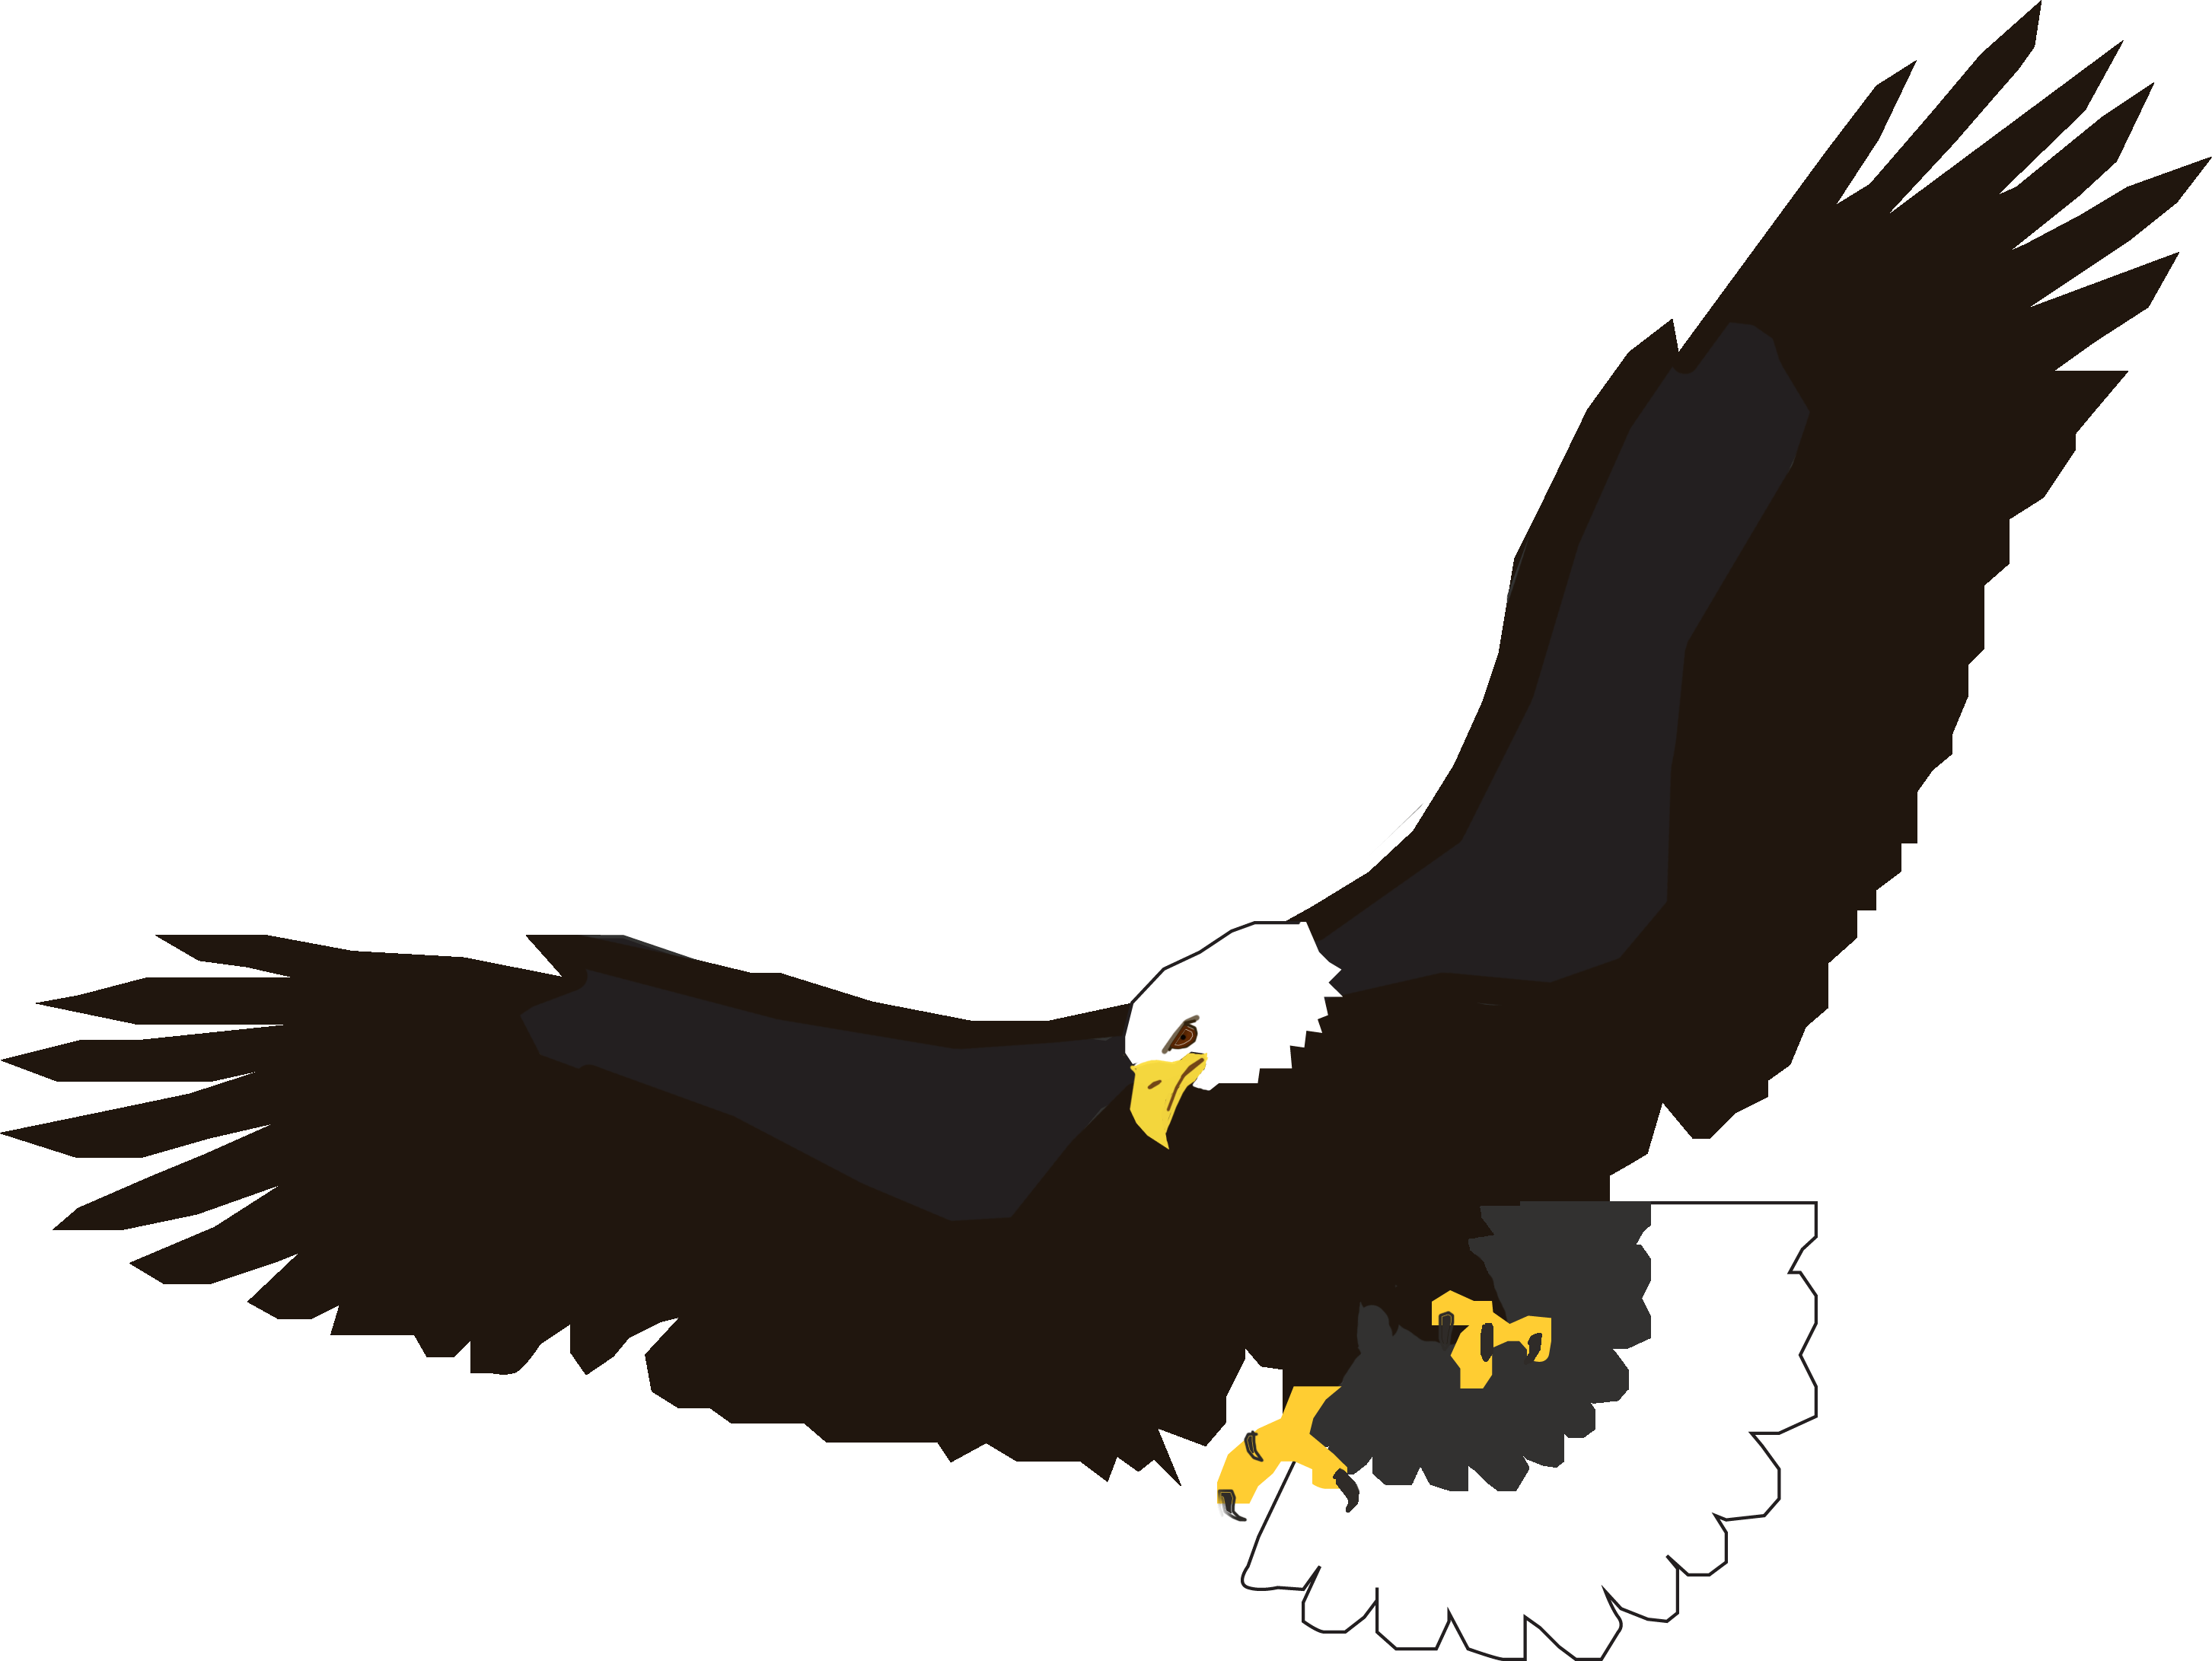 Flying Eagle PNG Transparent image.